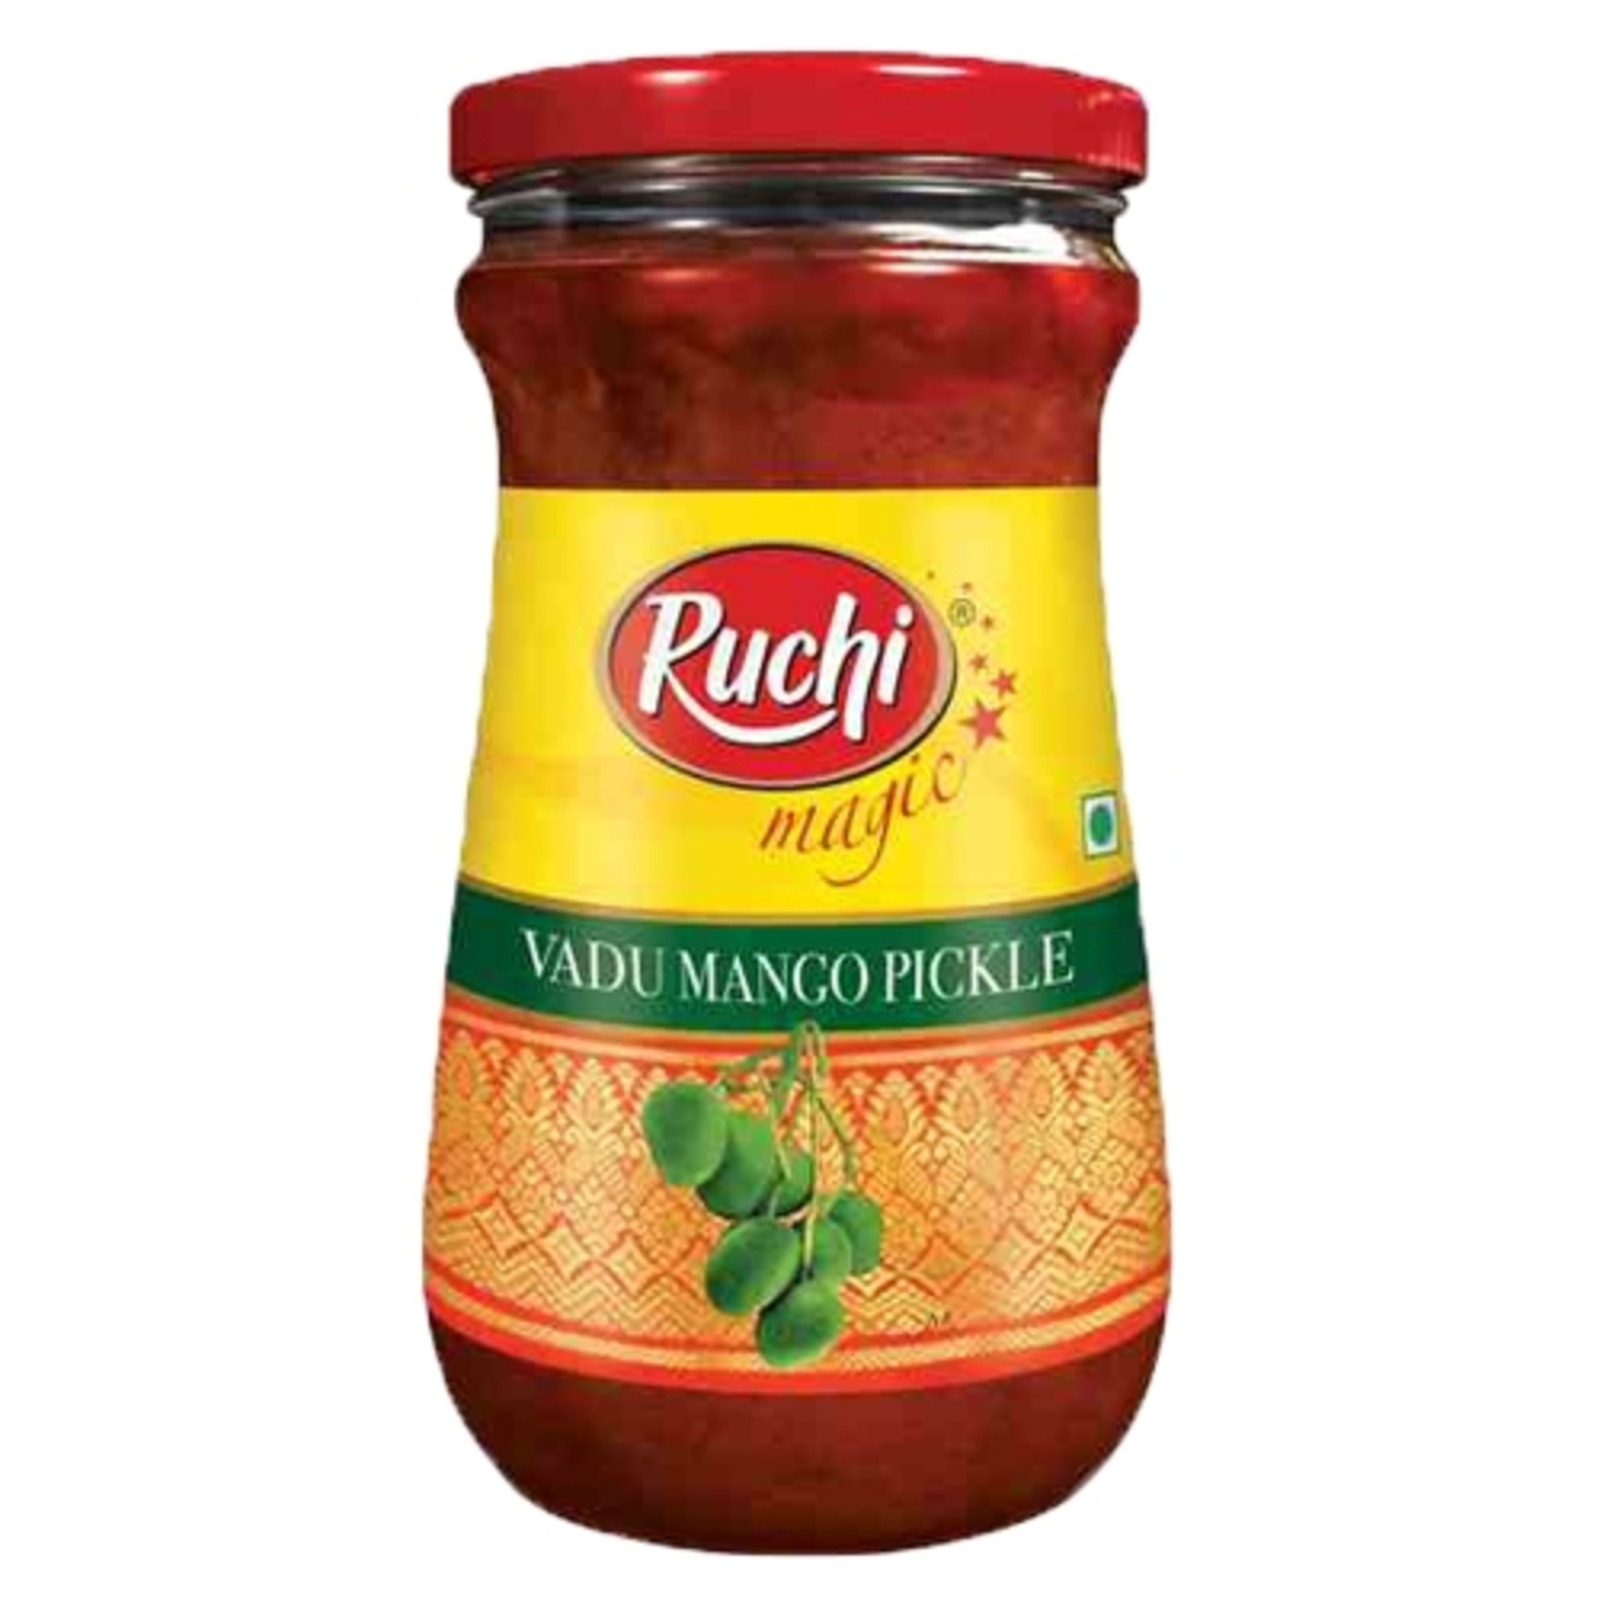 Ruchi - Vadu Mango Pickle